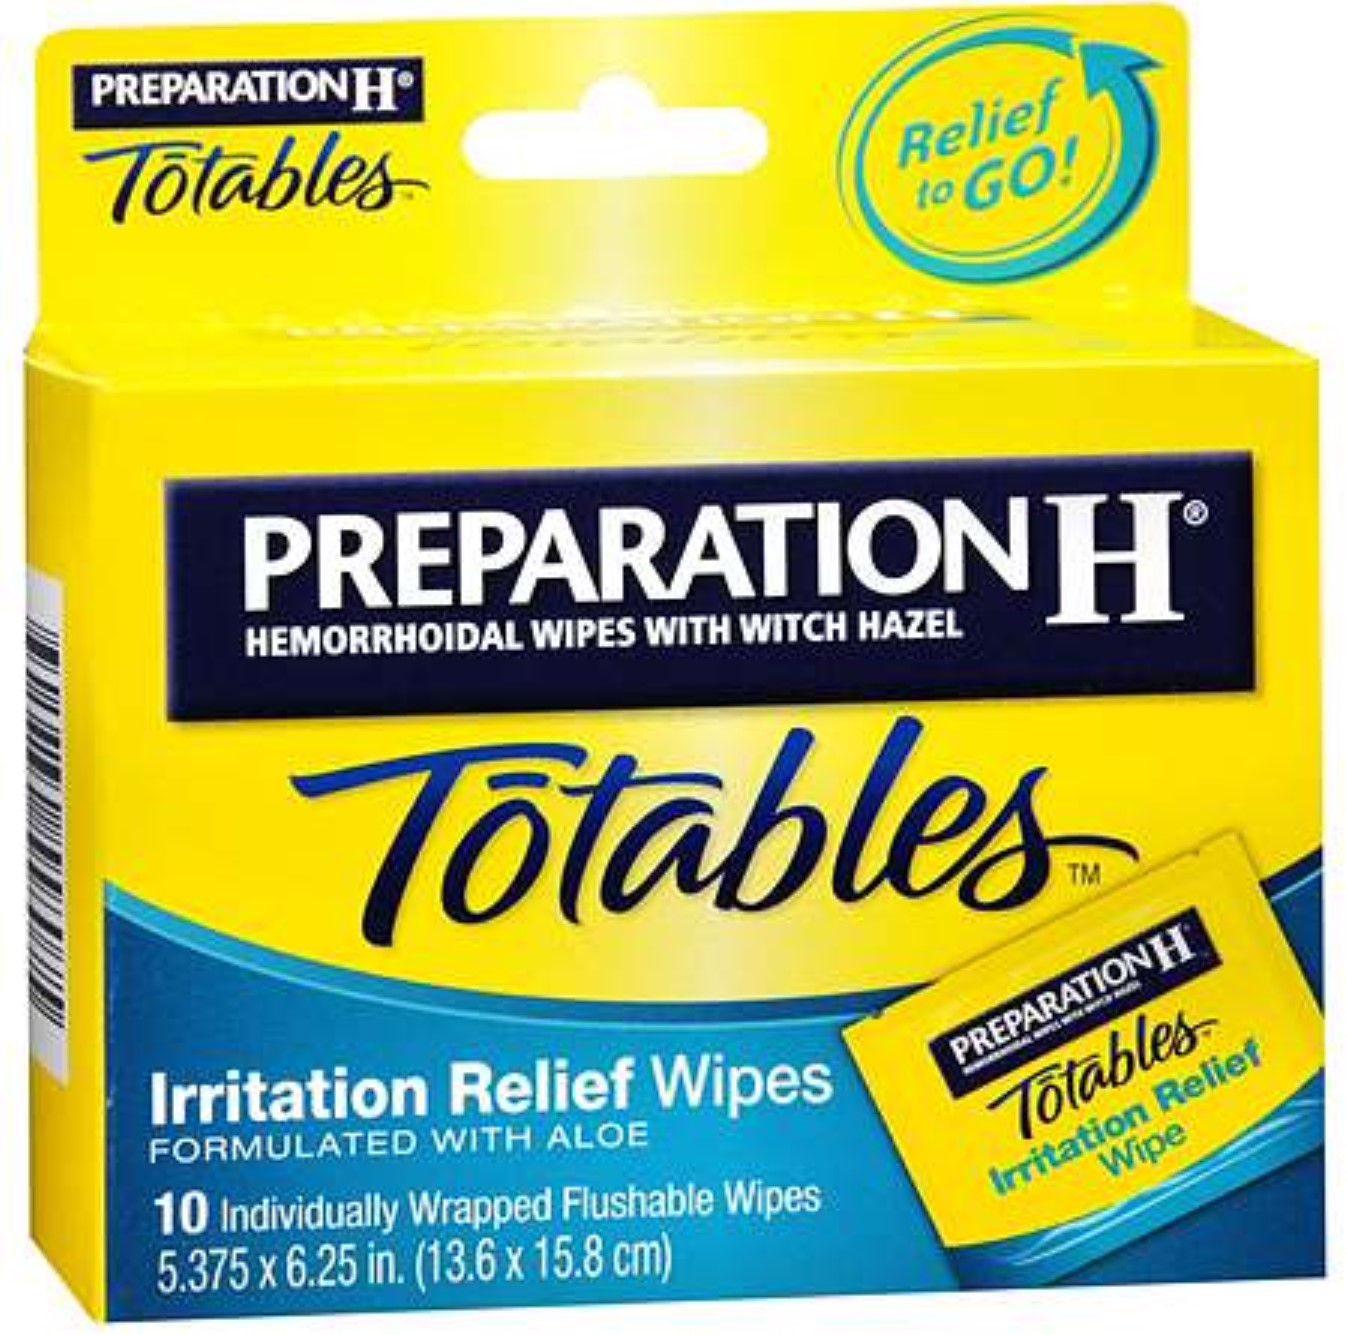 Preparation H Totables Irritation Relief Wipes 10 Each (Pack of 2)